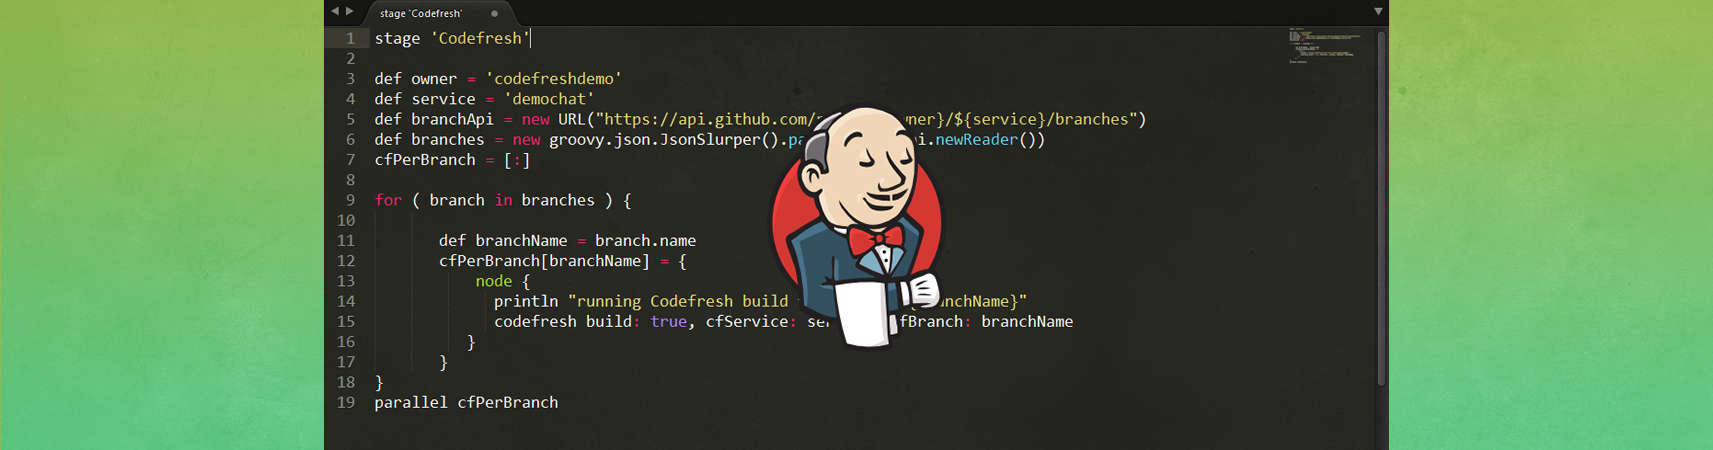 Pipelines-as-Code with the New Codefresh Jenkins Plugin